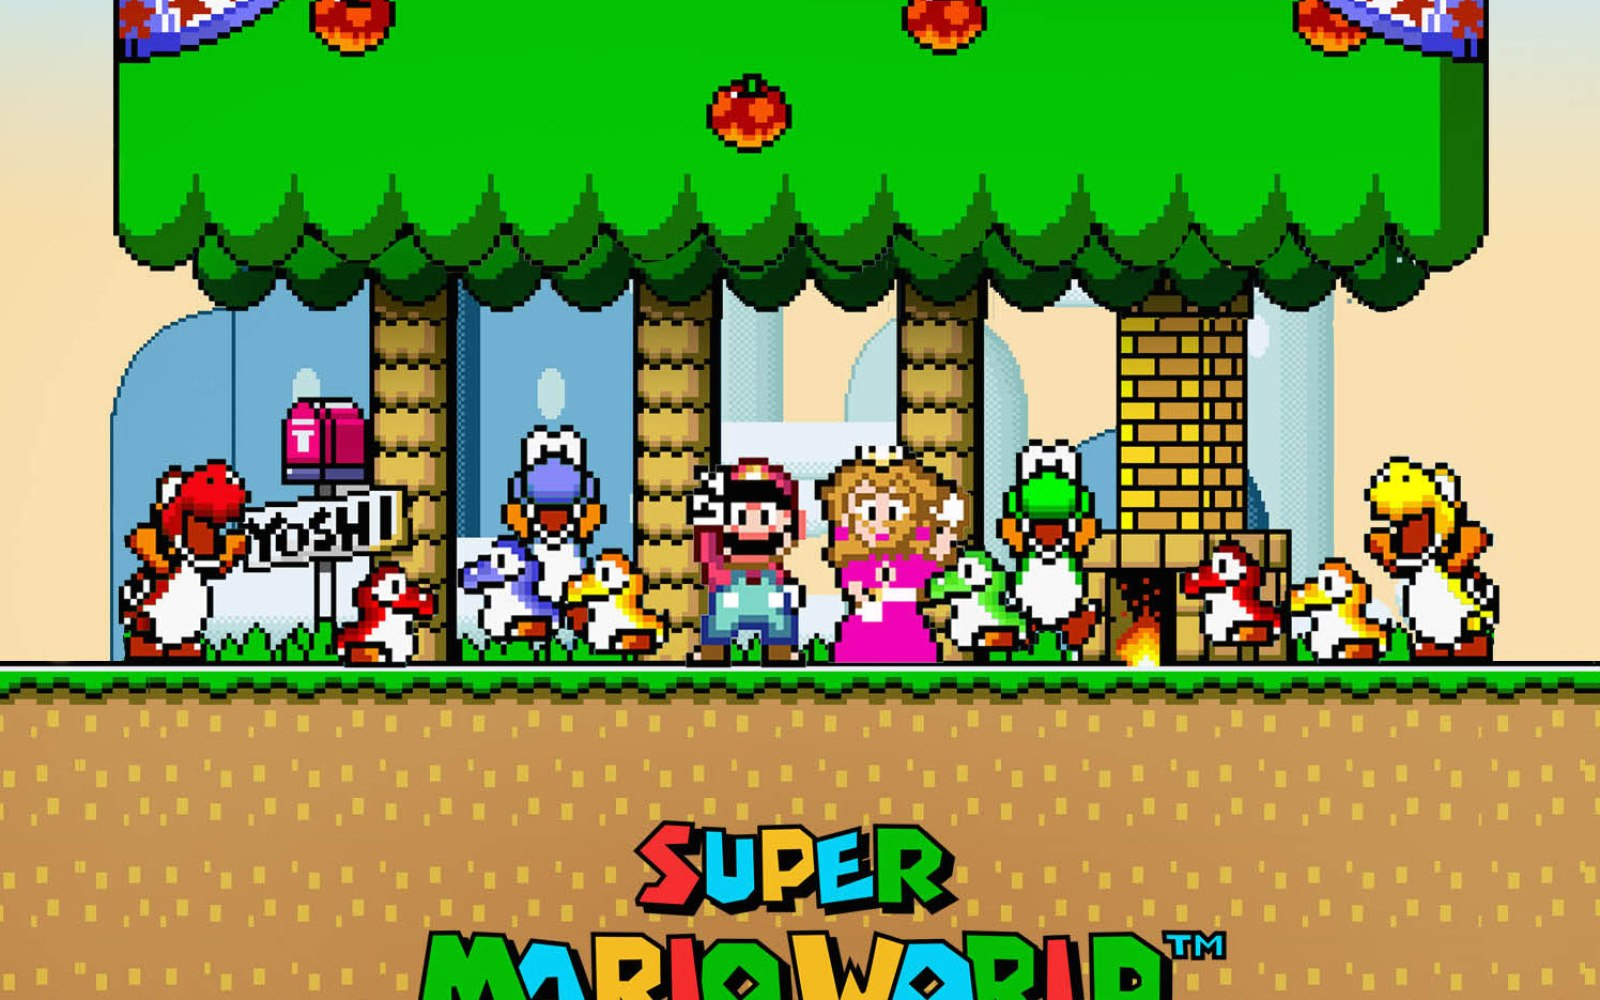 Watch this speedrunner clear Super Mario World for SNES in 23 minutes while blindfolded